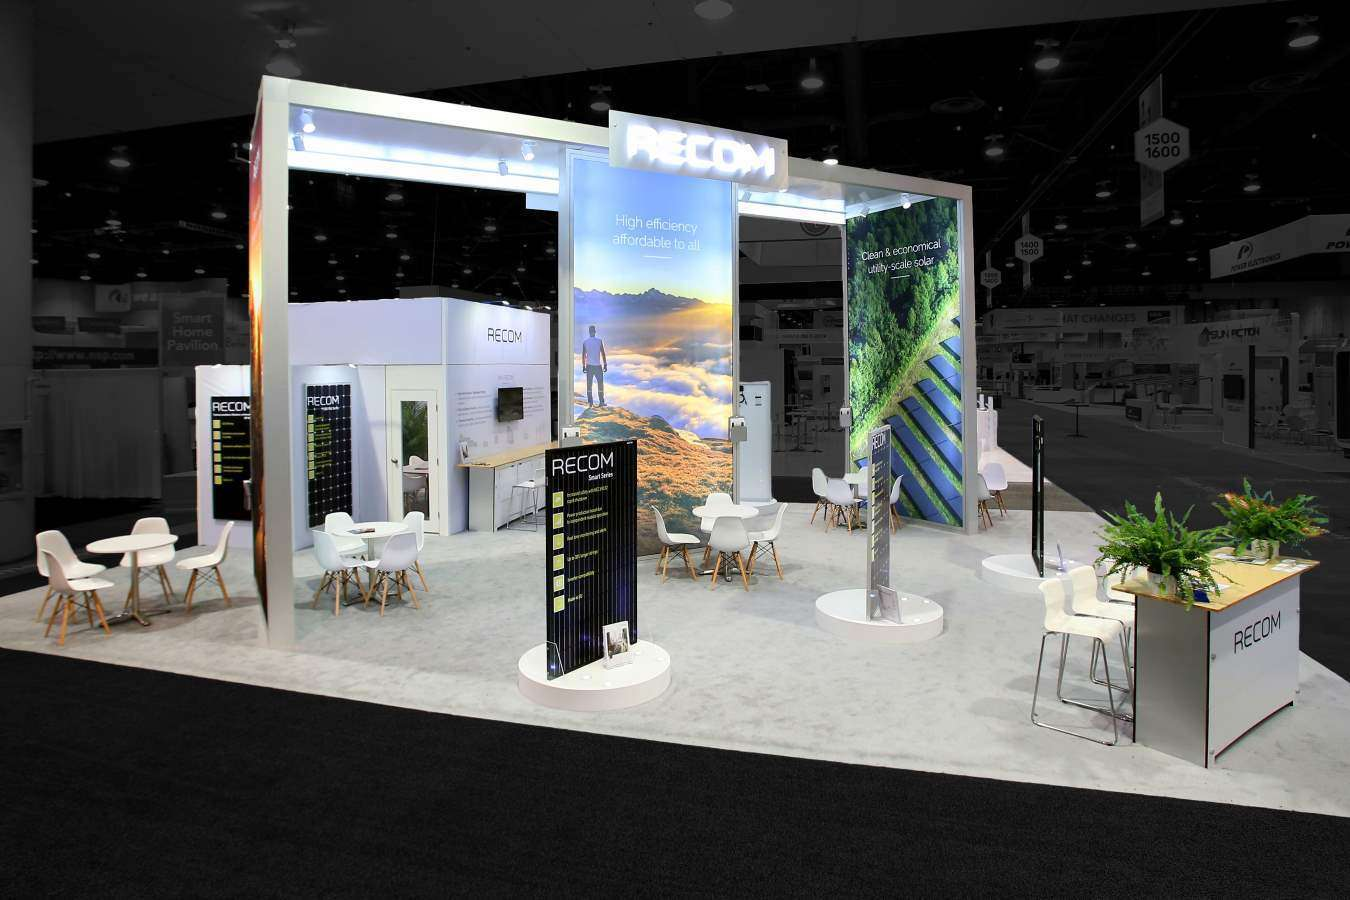 Exhibition A Booth : Trade show booth rentals las vegas custom exhibits and